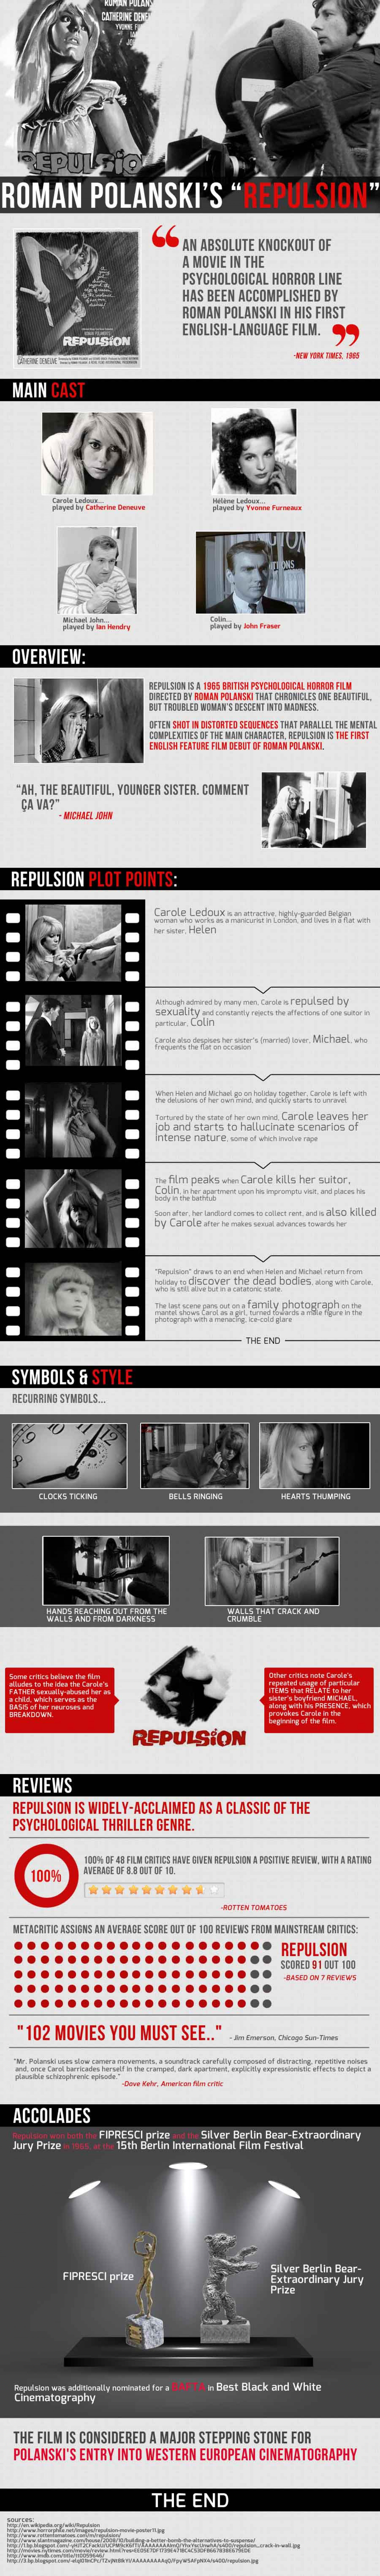 "...Roman Polanski's ""Repulsion"".... Infographic"